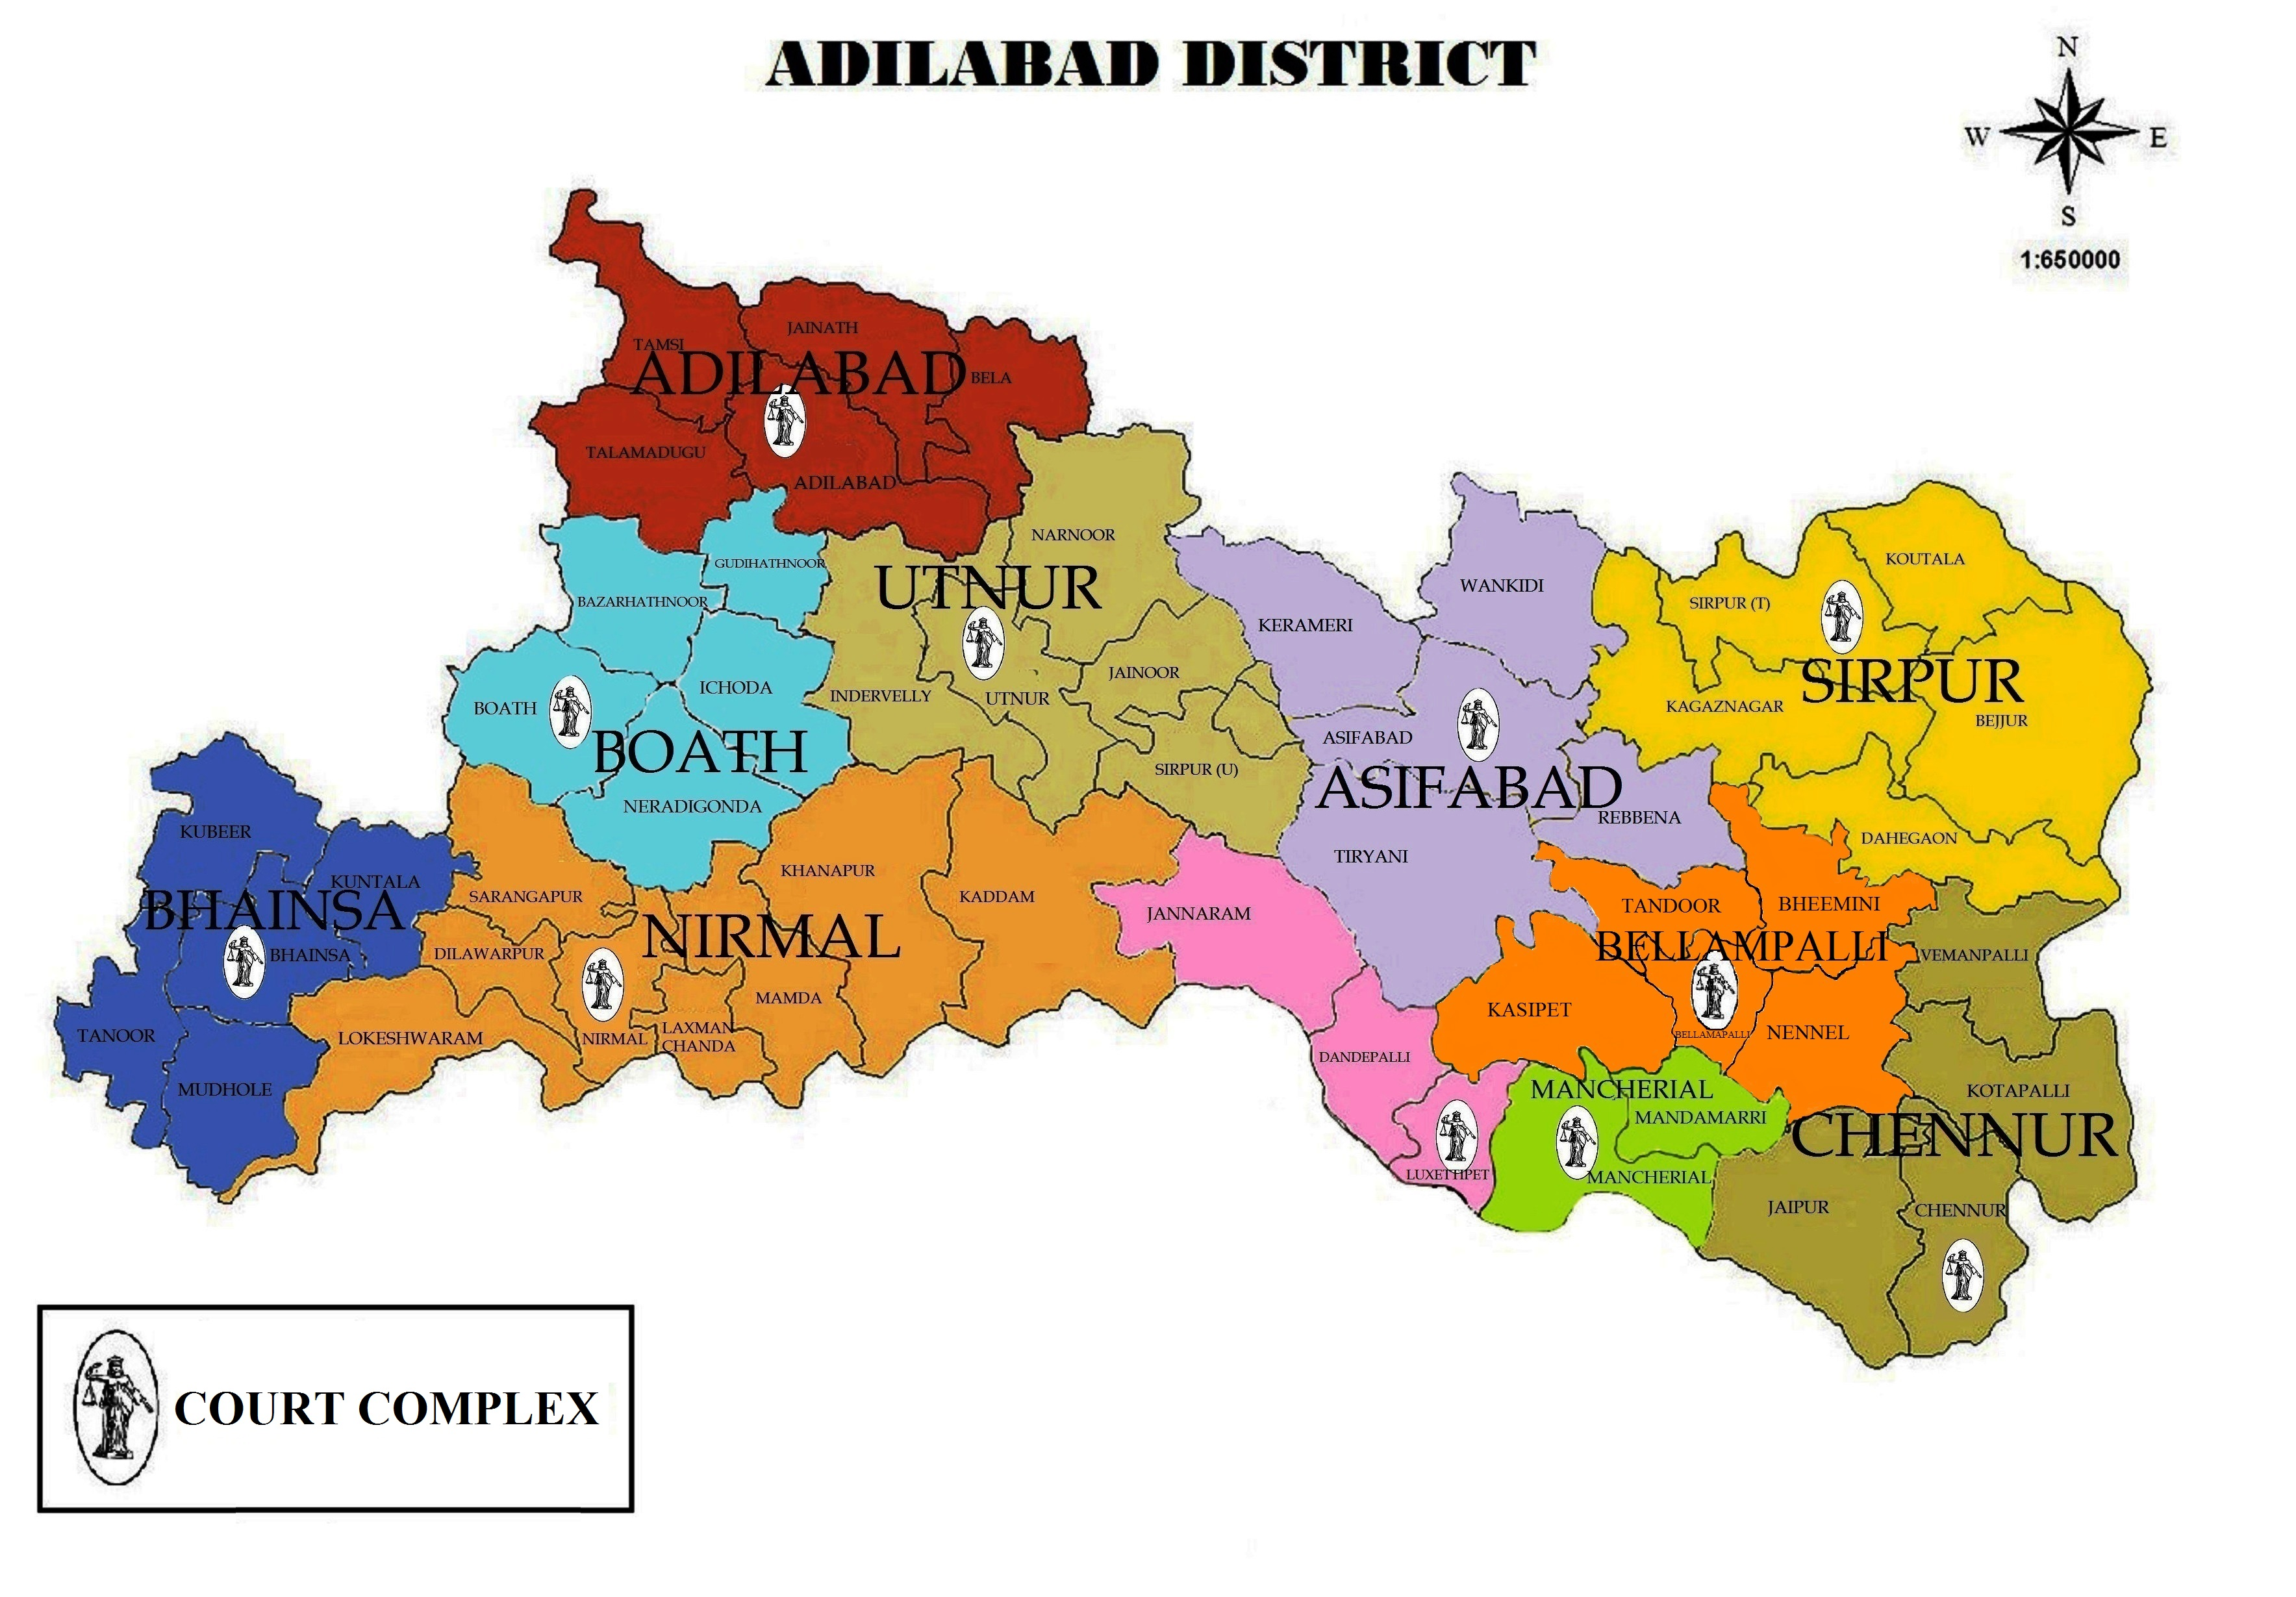 Adilabad/District Court in India | Official Website of